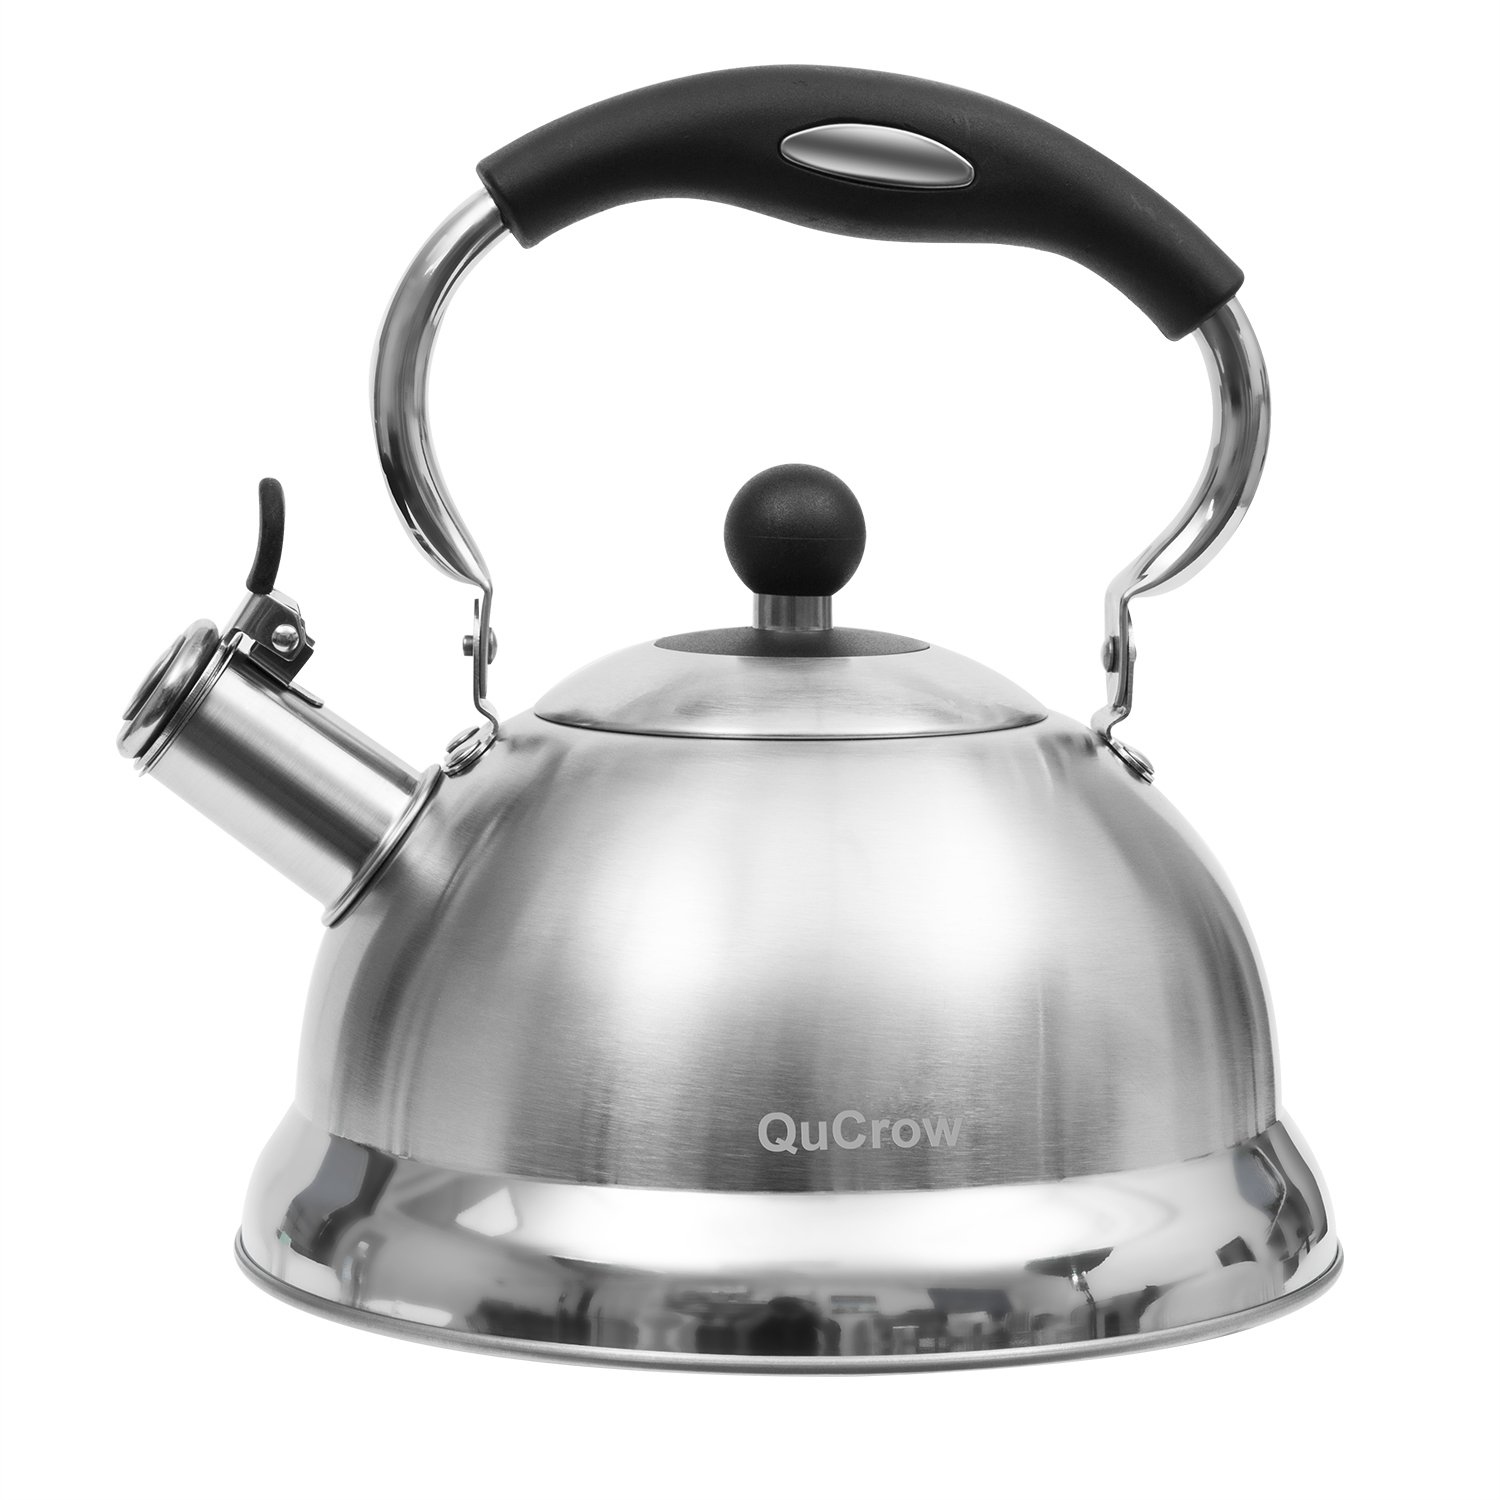 QuCrow Whistling Tea Kettle with Heat-Proof Handle, Kitchen Grade Stainless Steel Teapot Stovetops, 3 Quart, Silver by QuCrow